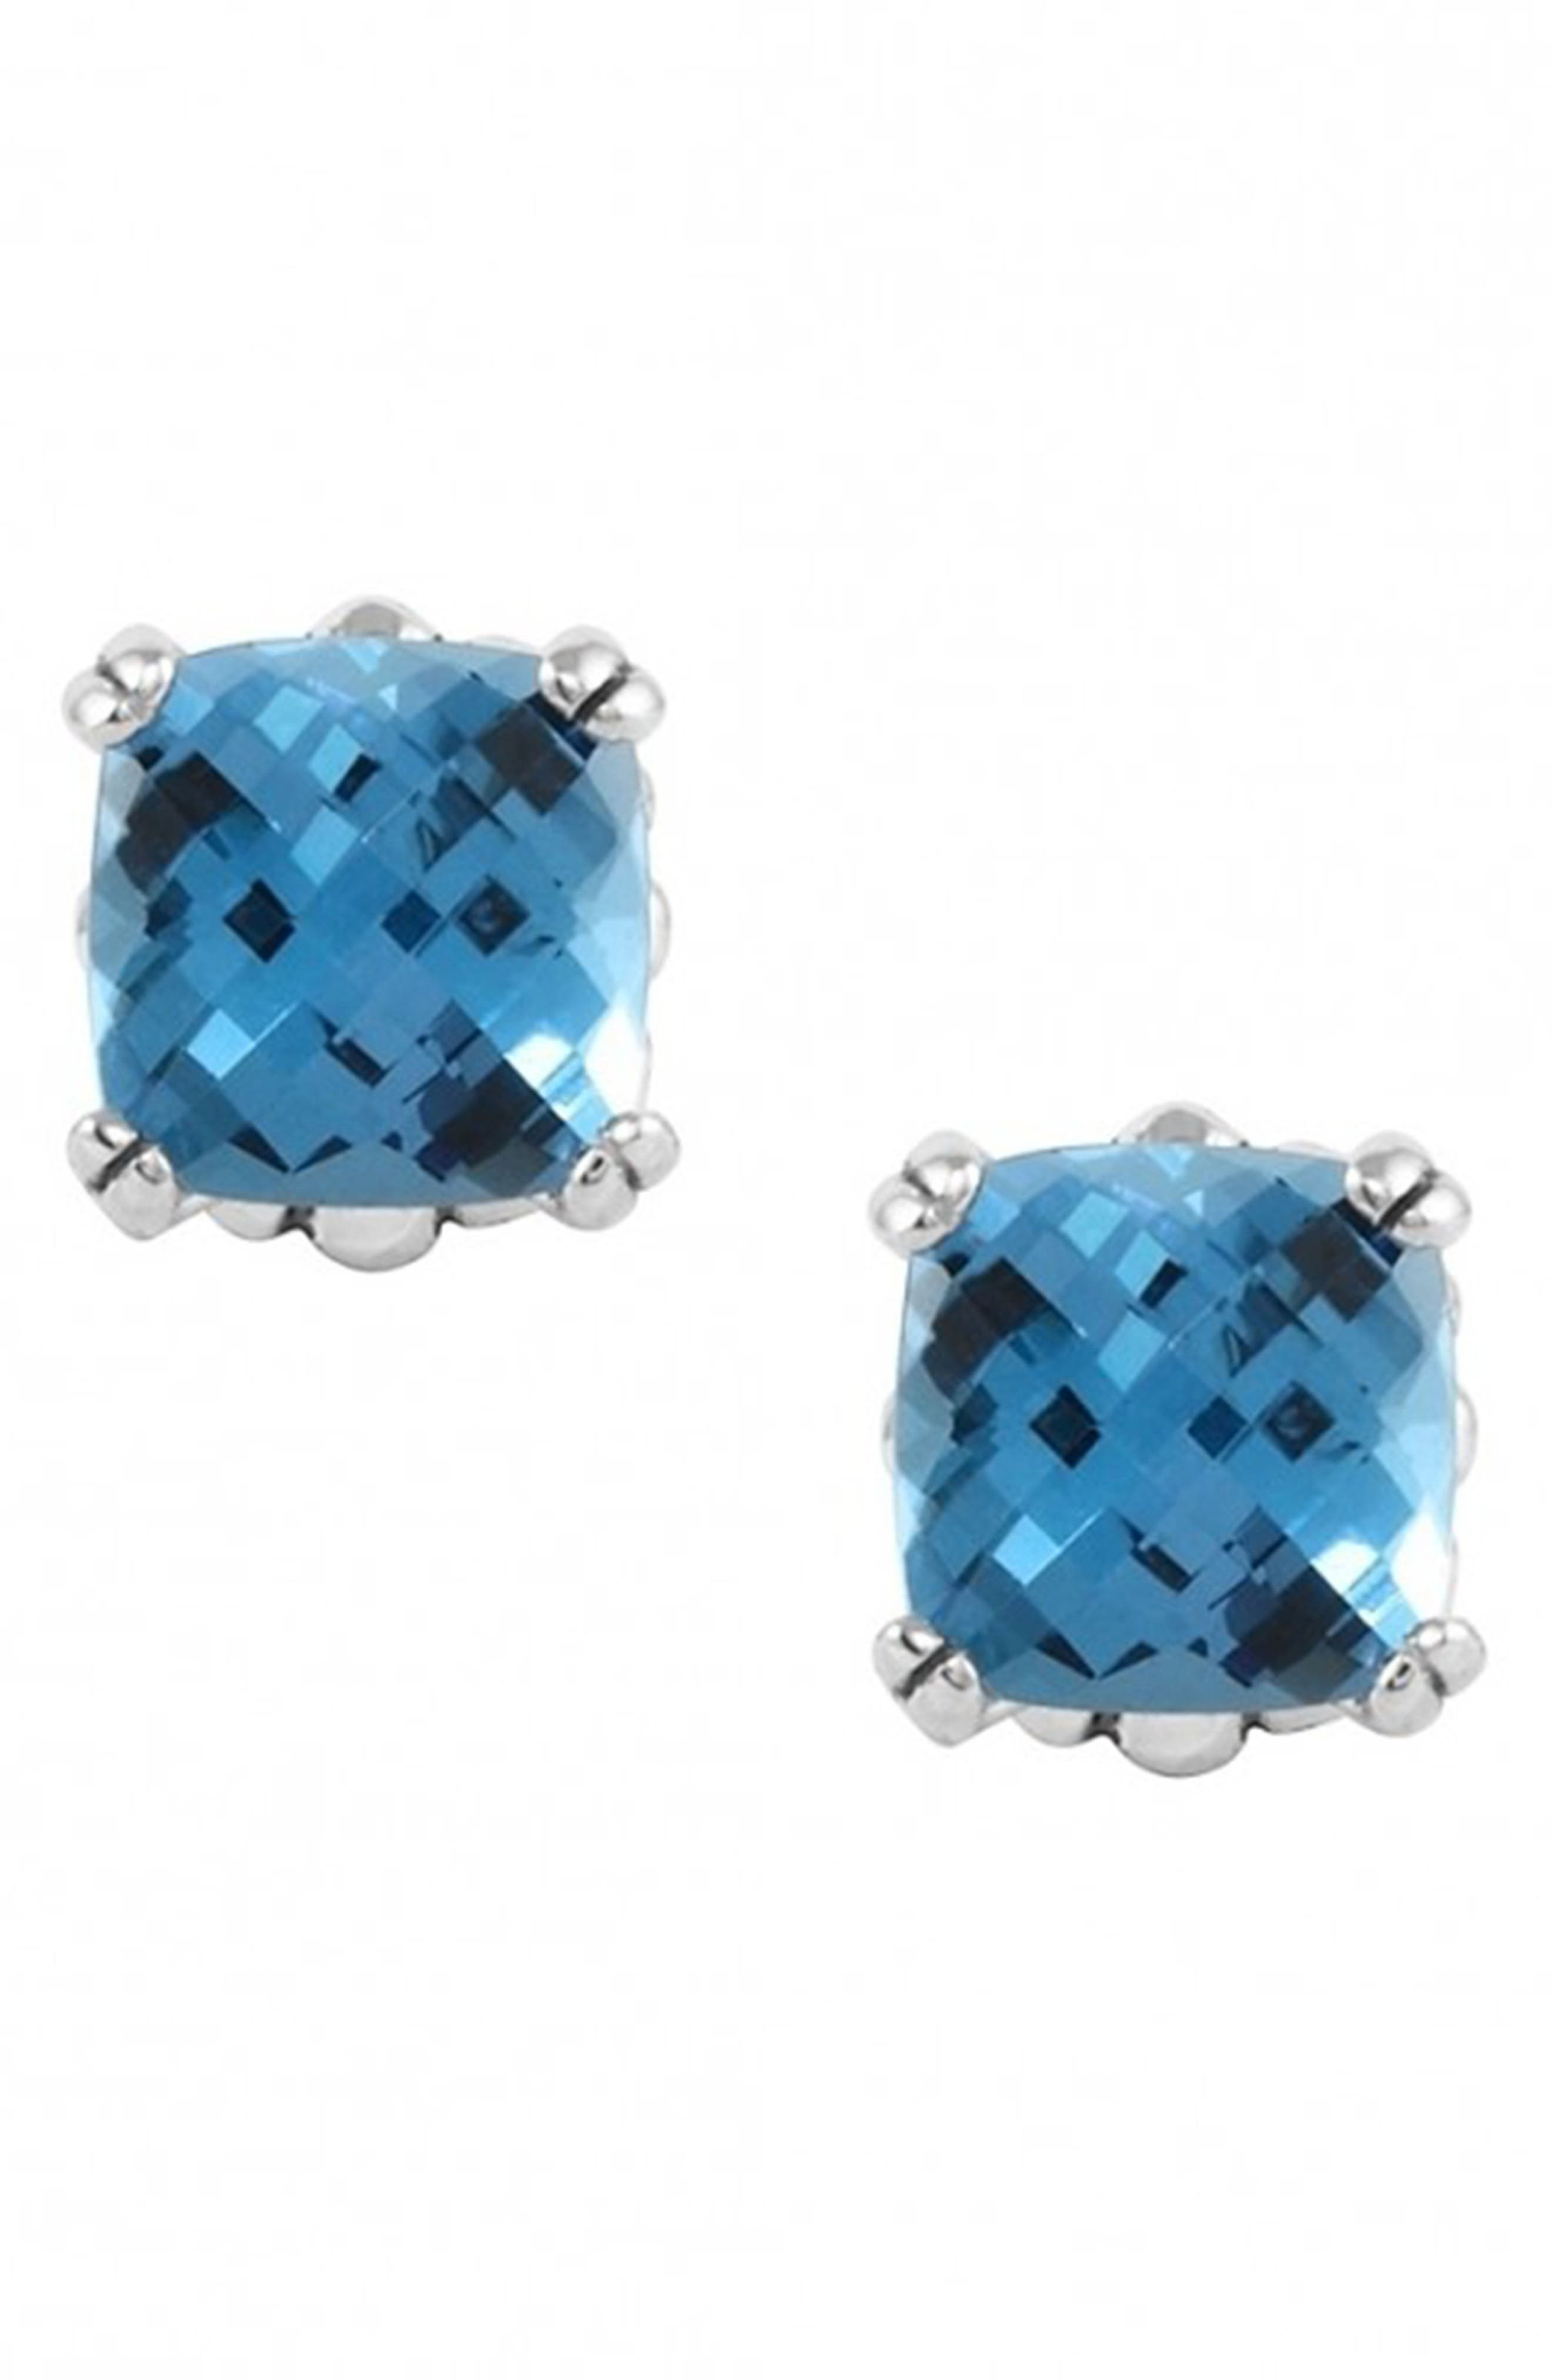 'Prism' Stud Earrings,                             Alternate thumbnail 2, color,                             SILVER/ BLUE TOPAZ